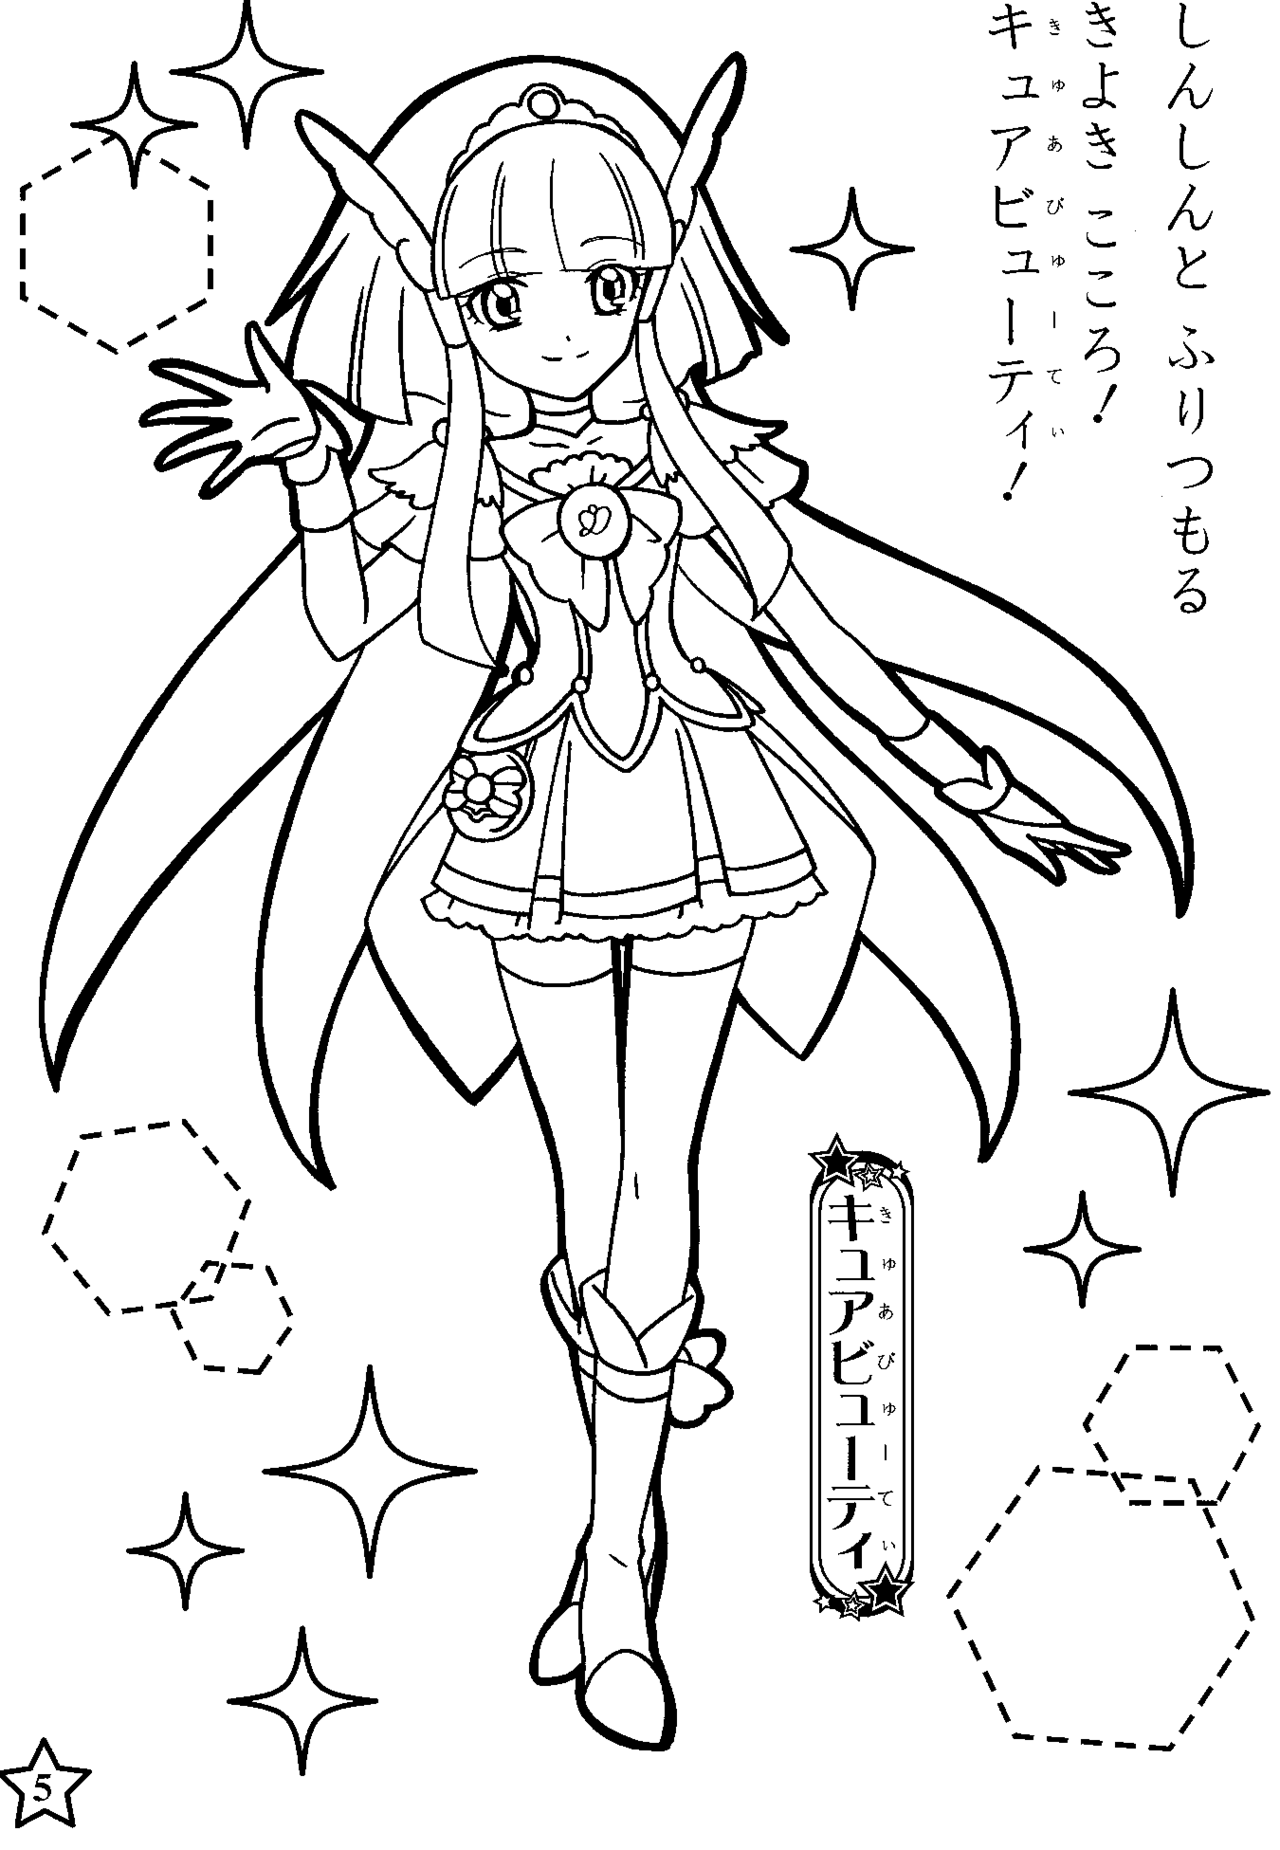 Pretty Cure Coloring Pages Google Search Coloring Pages